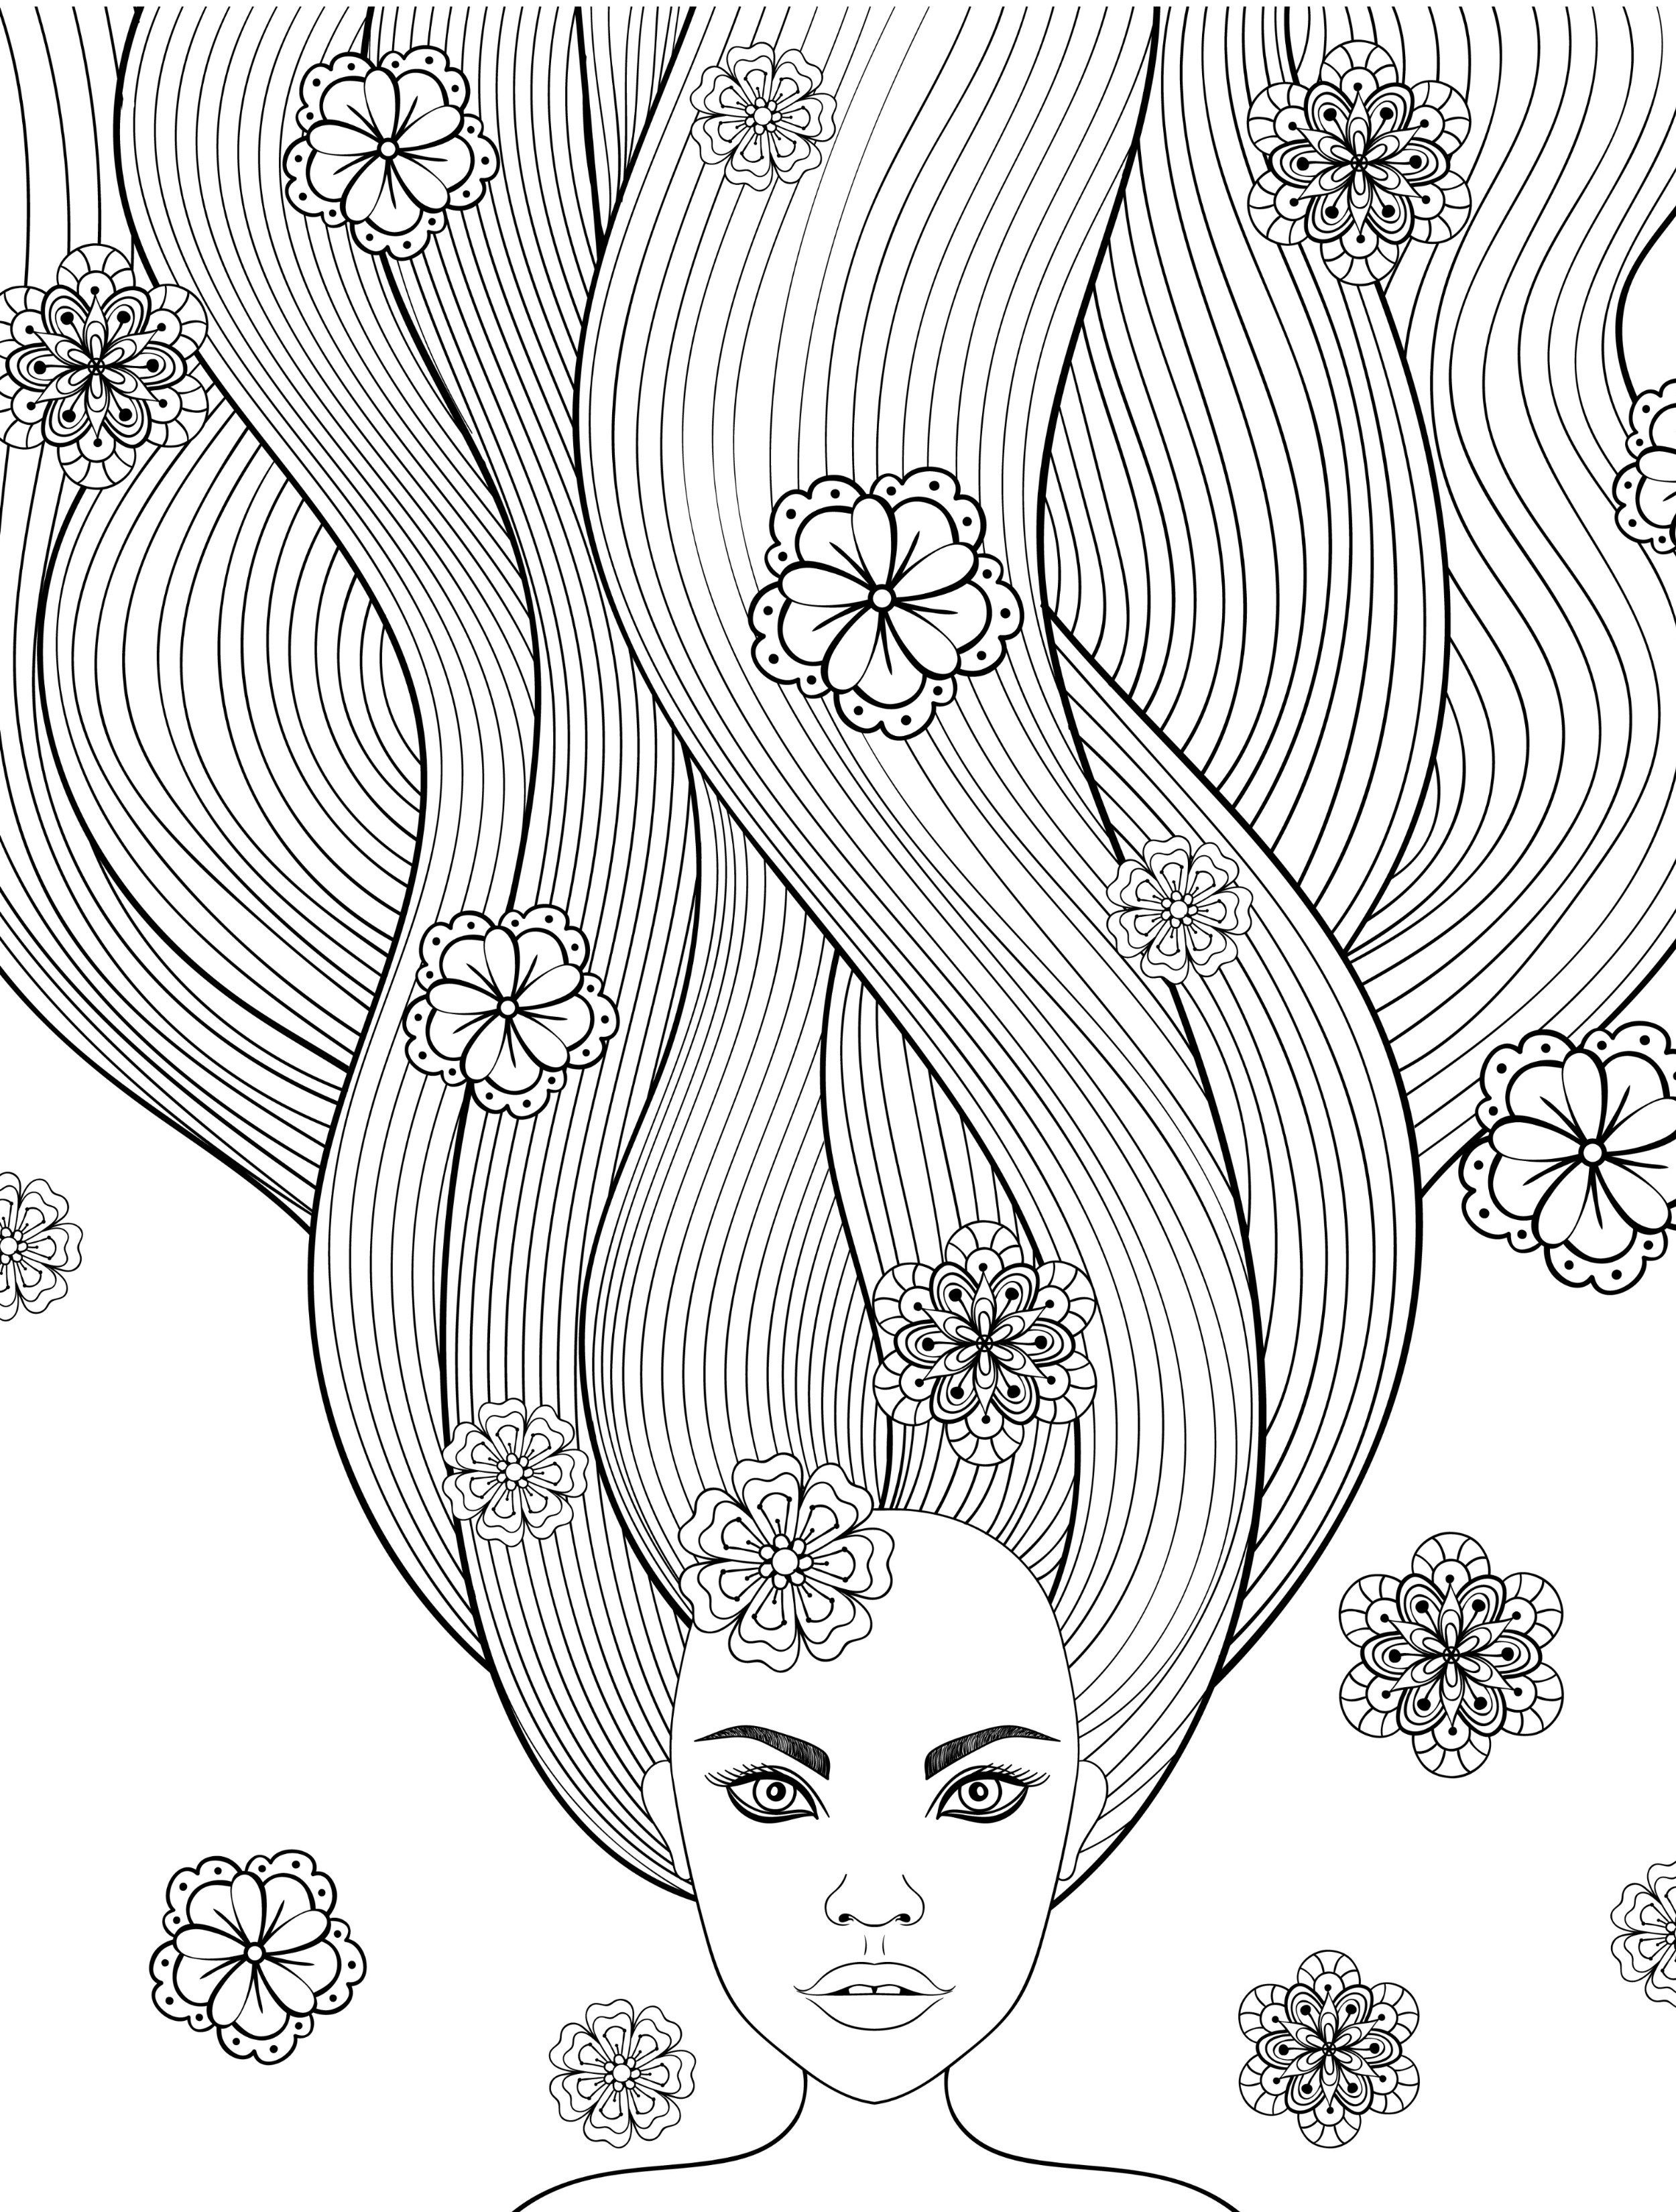 Printable Hair Coloring Pages. free printable adult coloring pages with long hair girls print